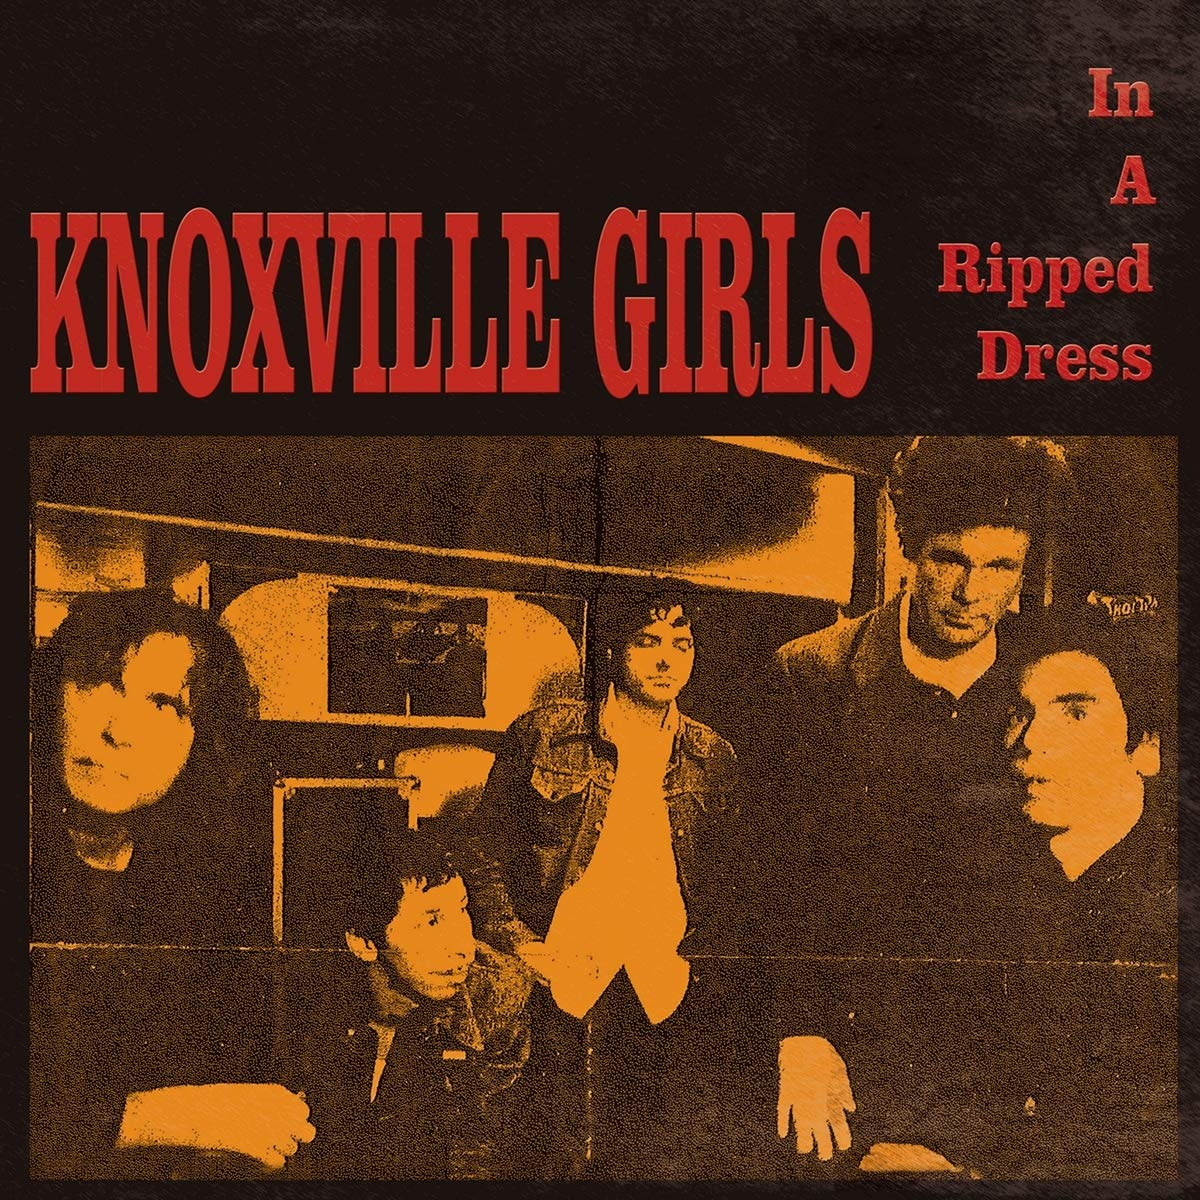 Knoxville Girls - In A Ripped Dress - Amazon.com Music